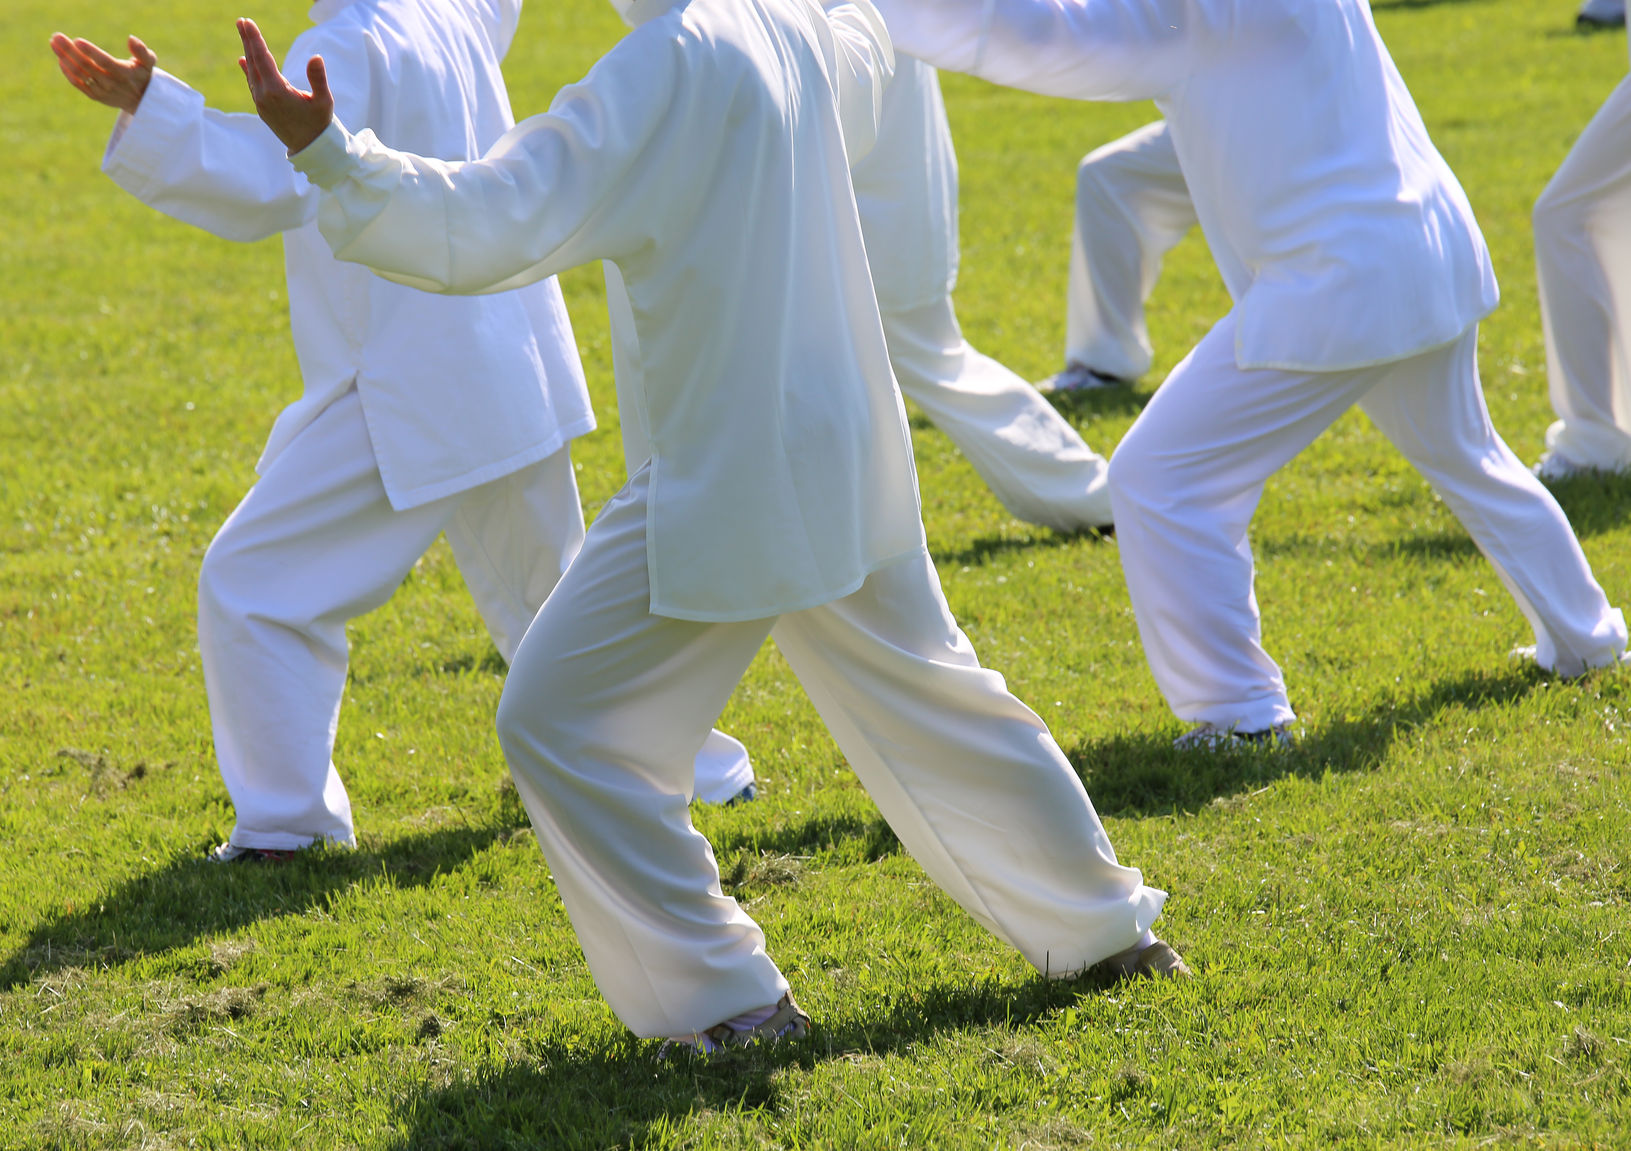 59408615 - people fans of martial arts with shiny white silk dress during the concentration exercises and relaxation in the large park